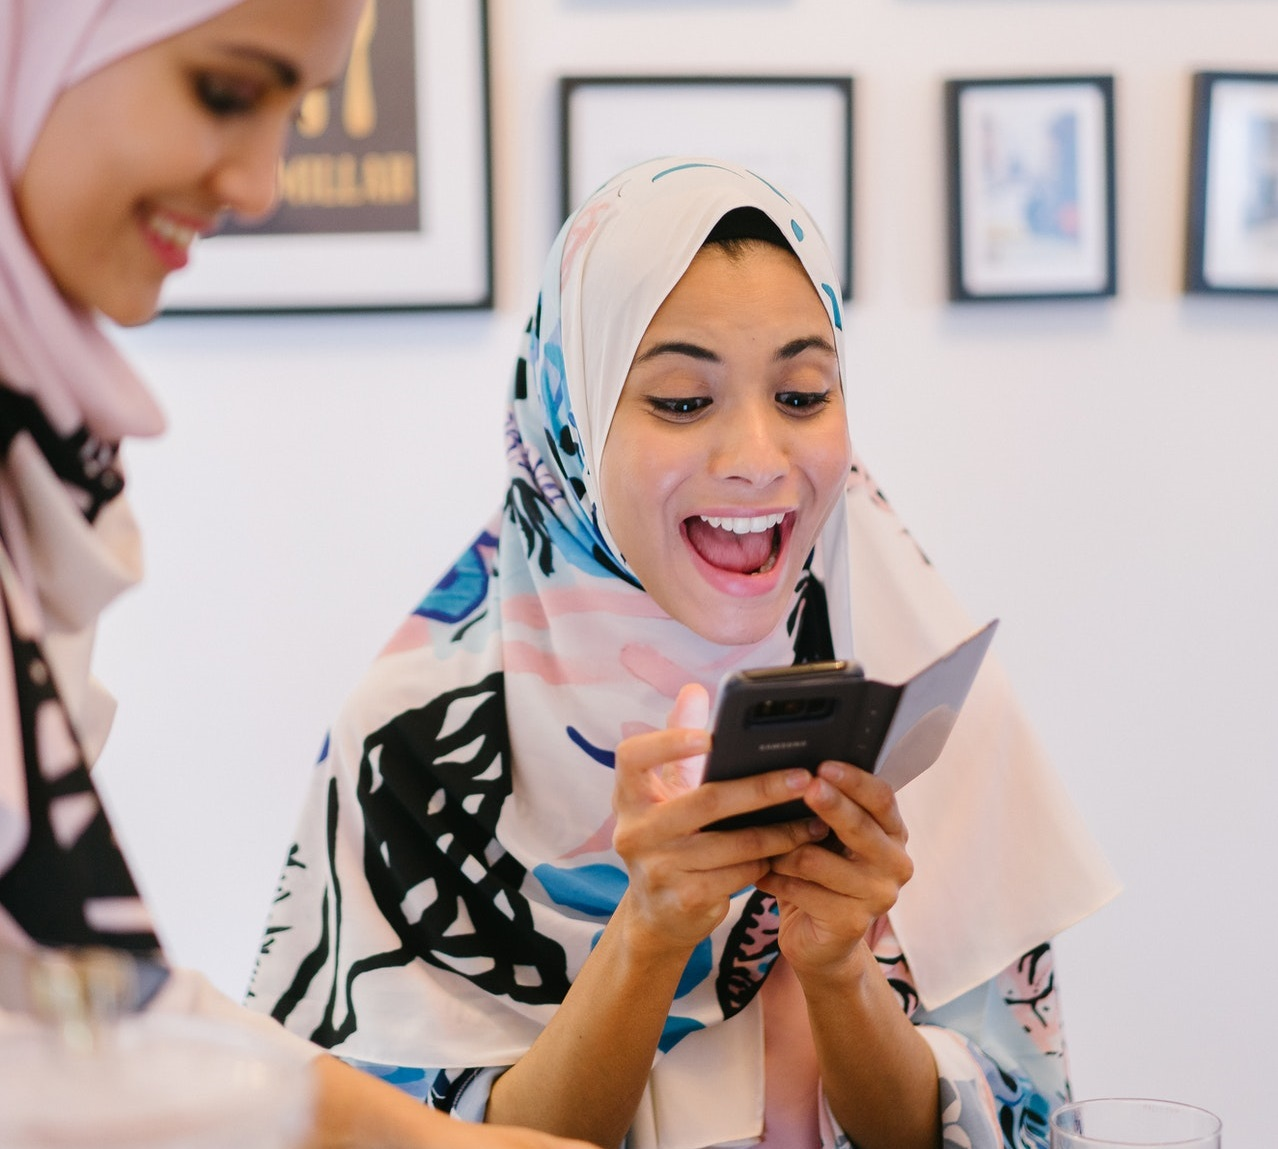 excited lady using smartphone